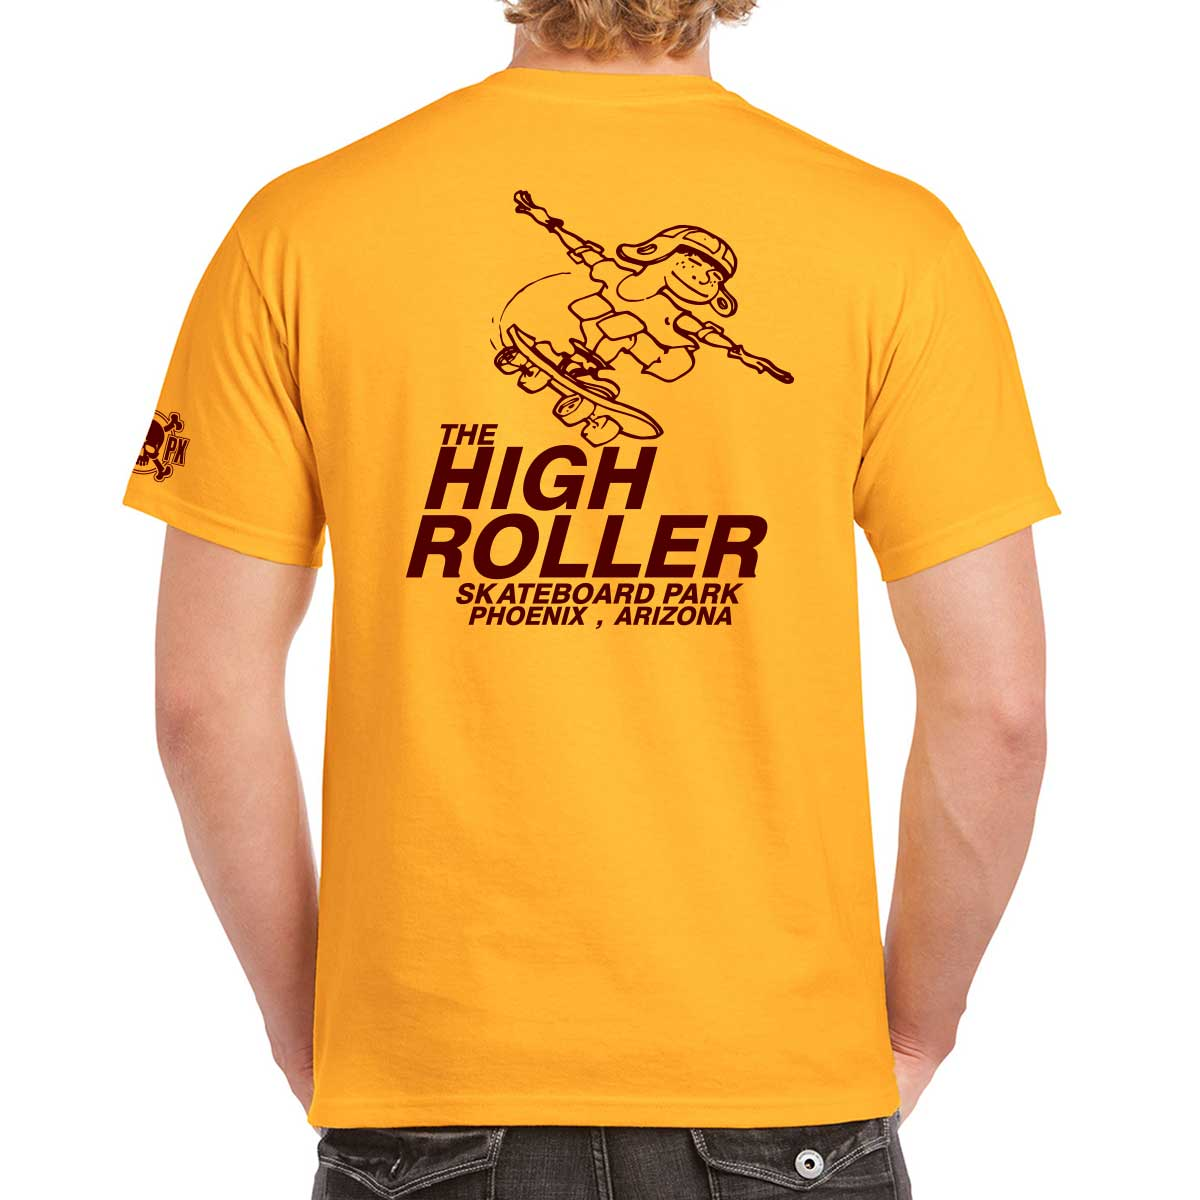 The High Roller Skateboard Park Gold T-shirt